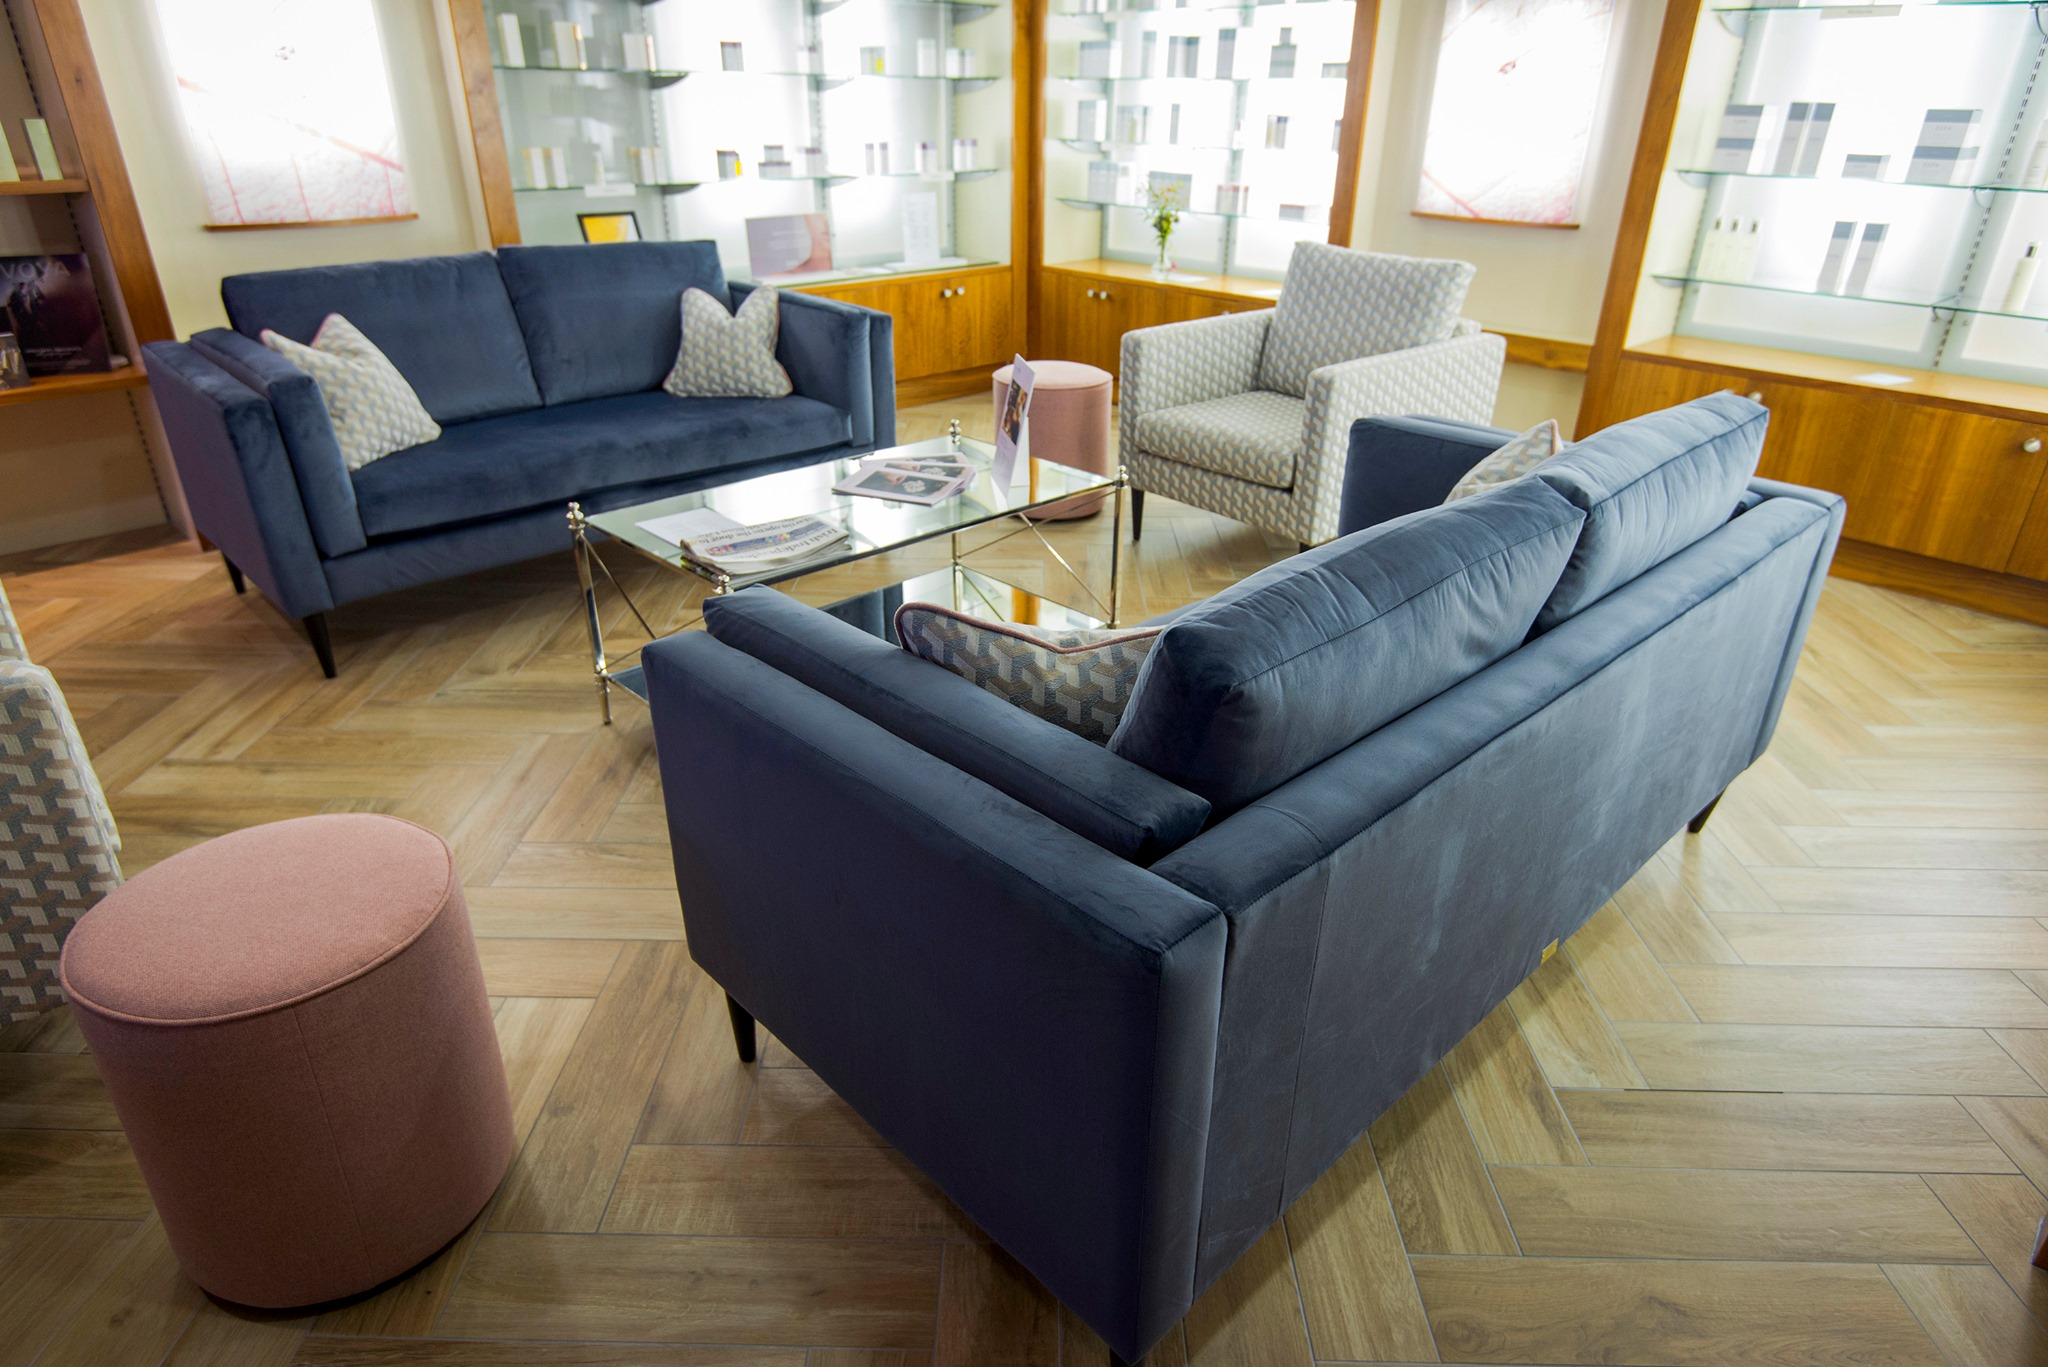 Sebastian sofas, chairs and pluto footstools